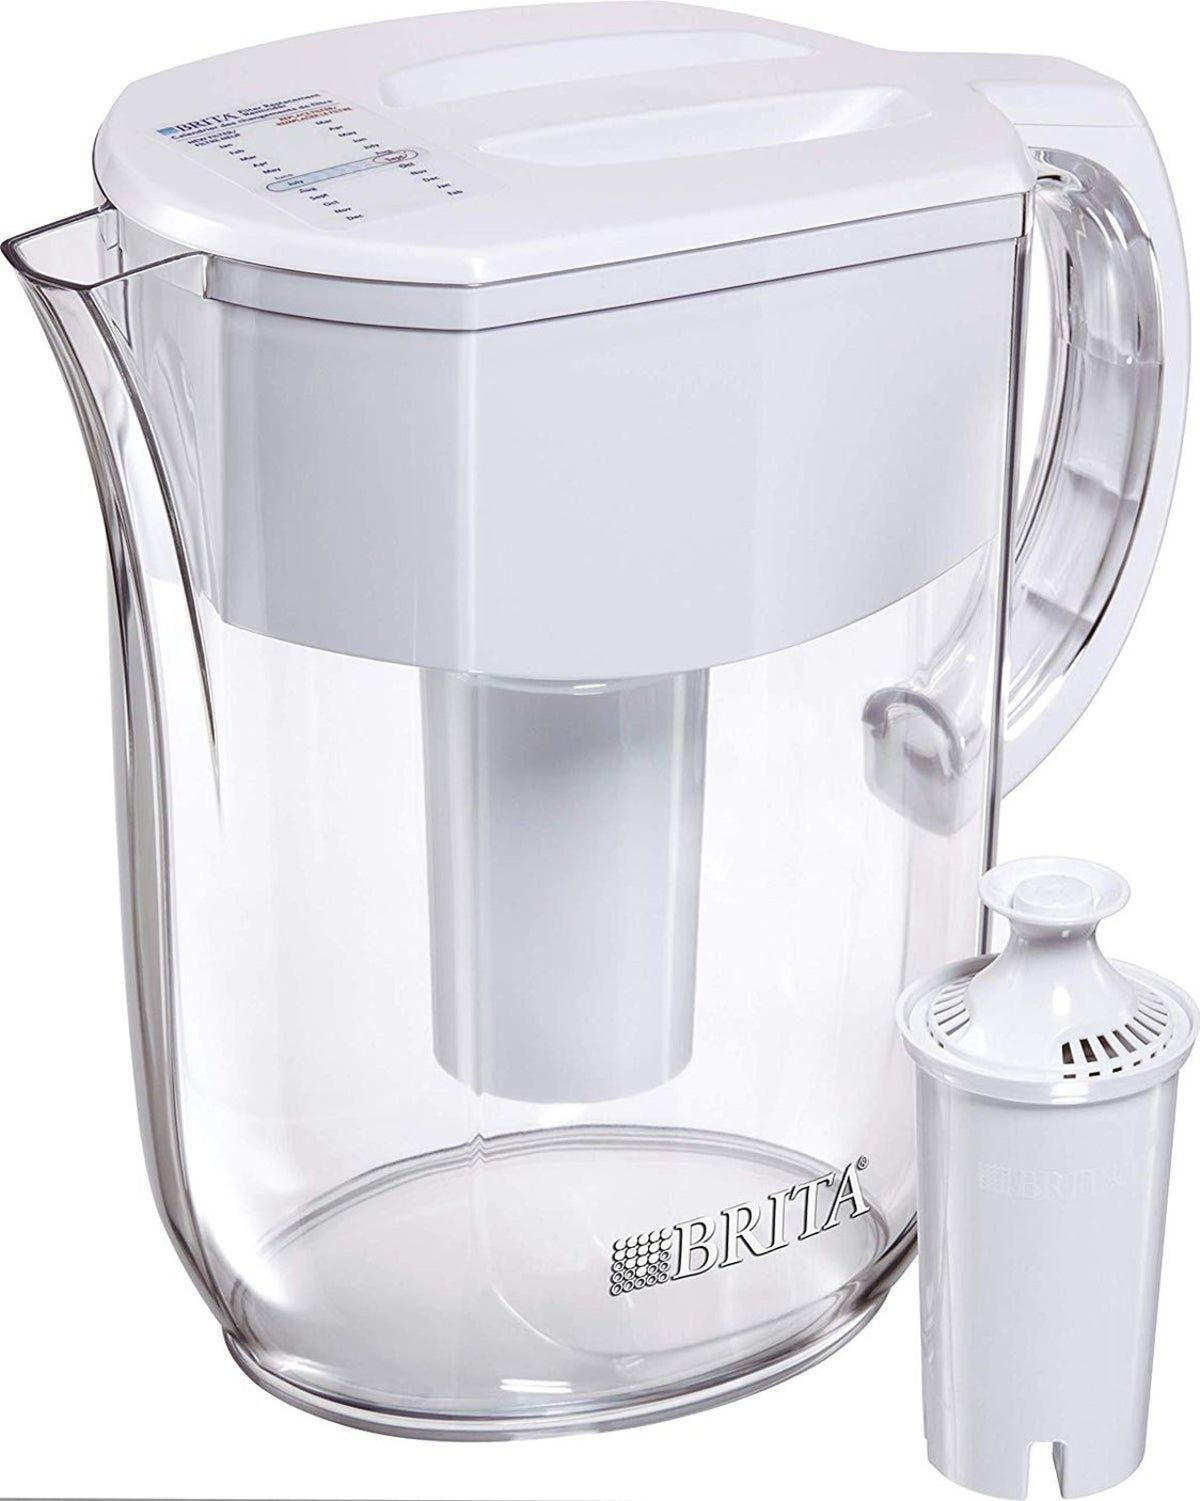 Brita water pitcher 10cup water filter find the perfect